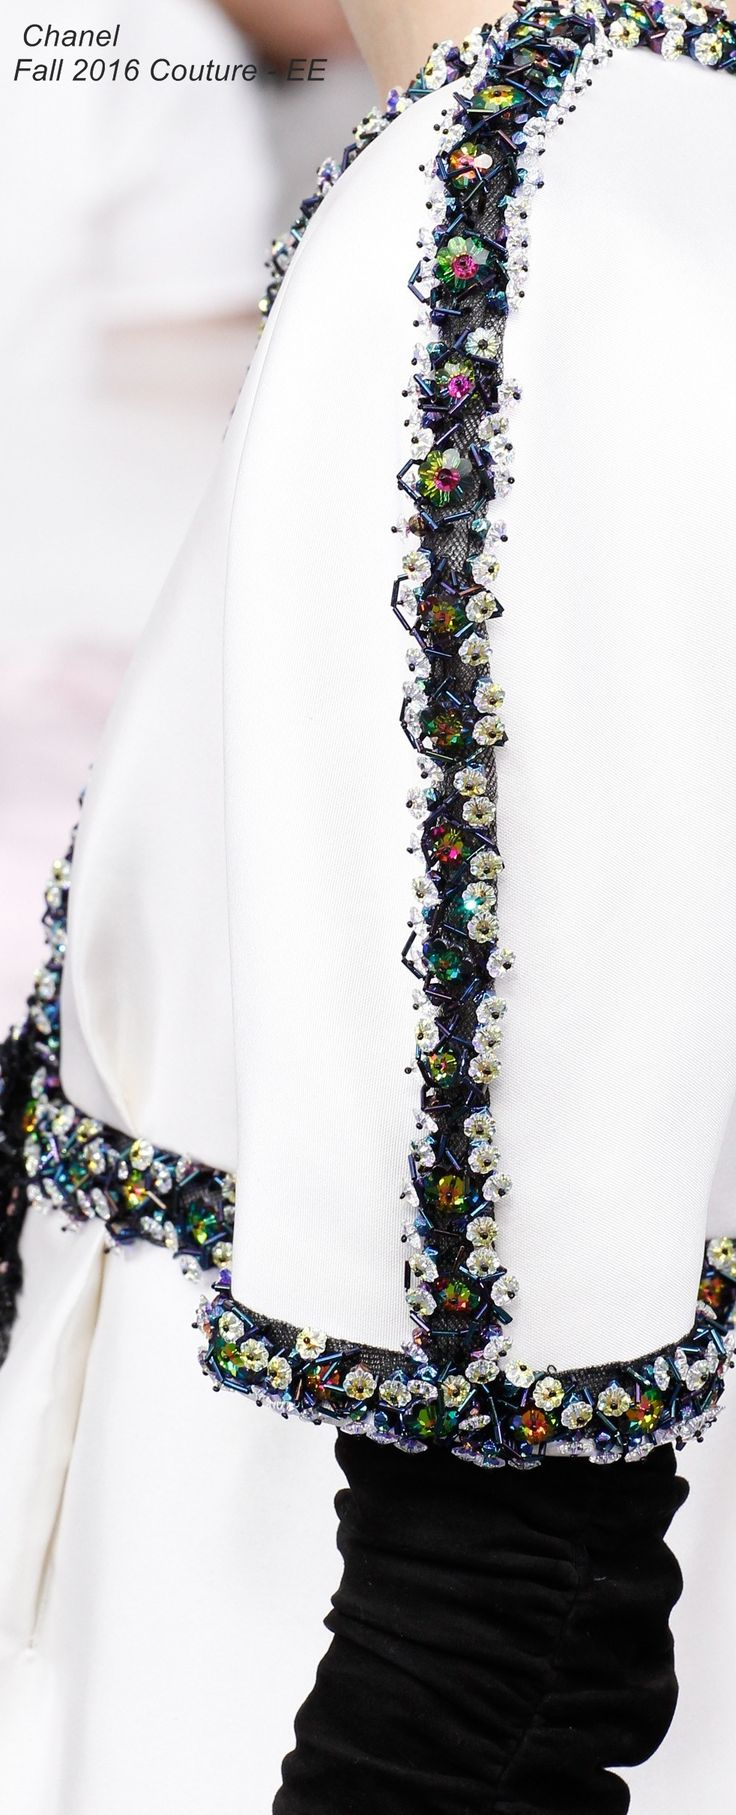 Chanel Fall 2016 Couture - EE